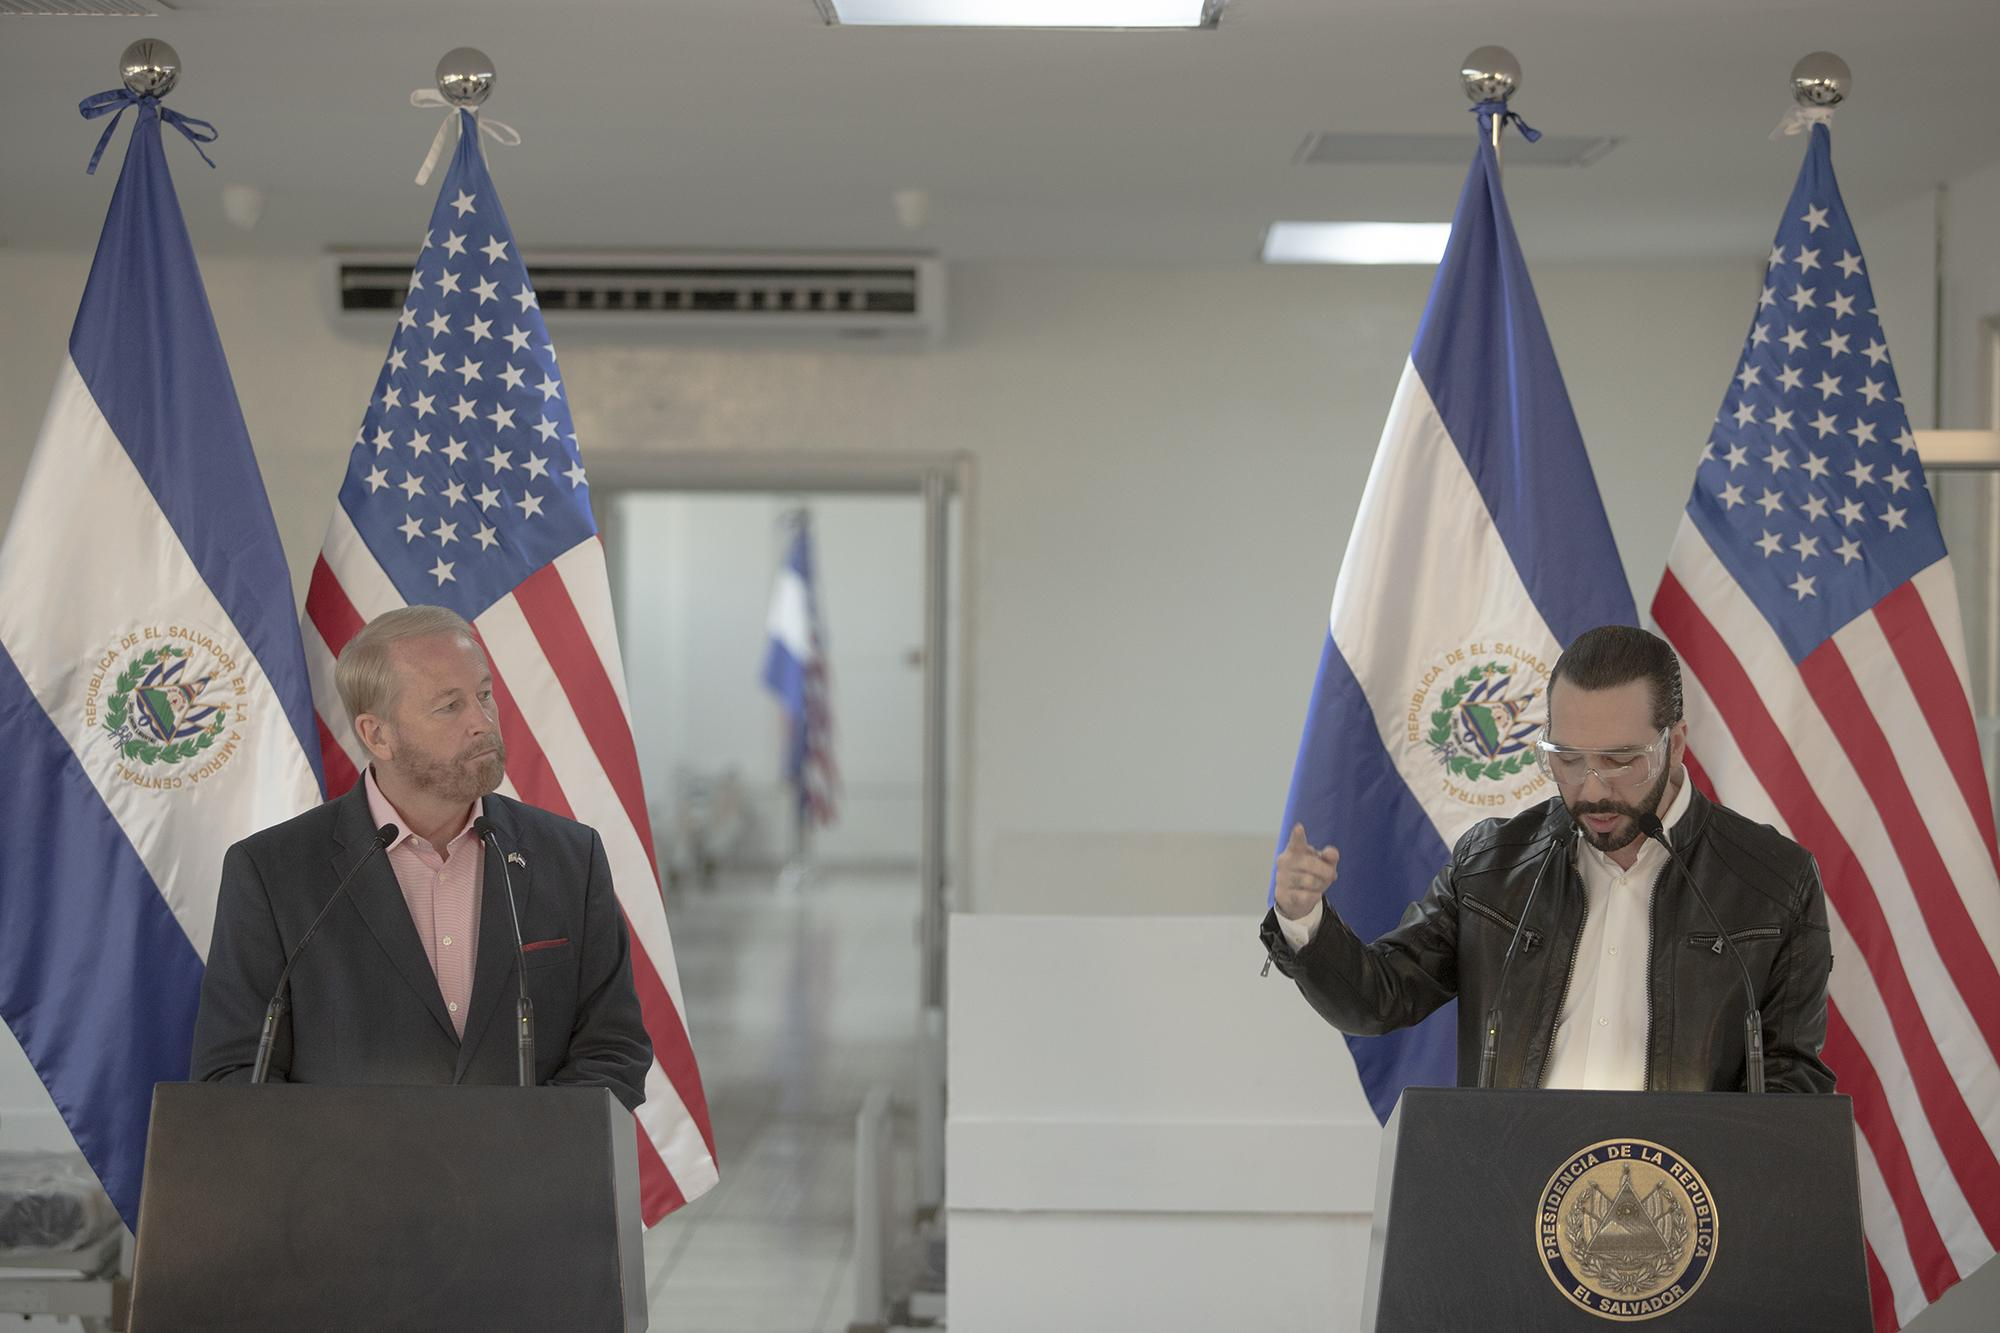 The U.S. ambassador to El Salvador, Ronald Johnson, and the president of El Salvador, Nayib Bukele, speak during a press conference at the Rosales Hospital in San Salvador on May 26, 2020. During the meeting, the Trump administration presented Bukele with a donation of medical equipment to help with El Salvador's response to the coronavirus crisis. Photo for El Faro: Carlos Barrera.